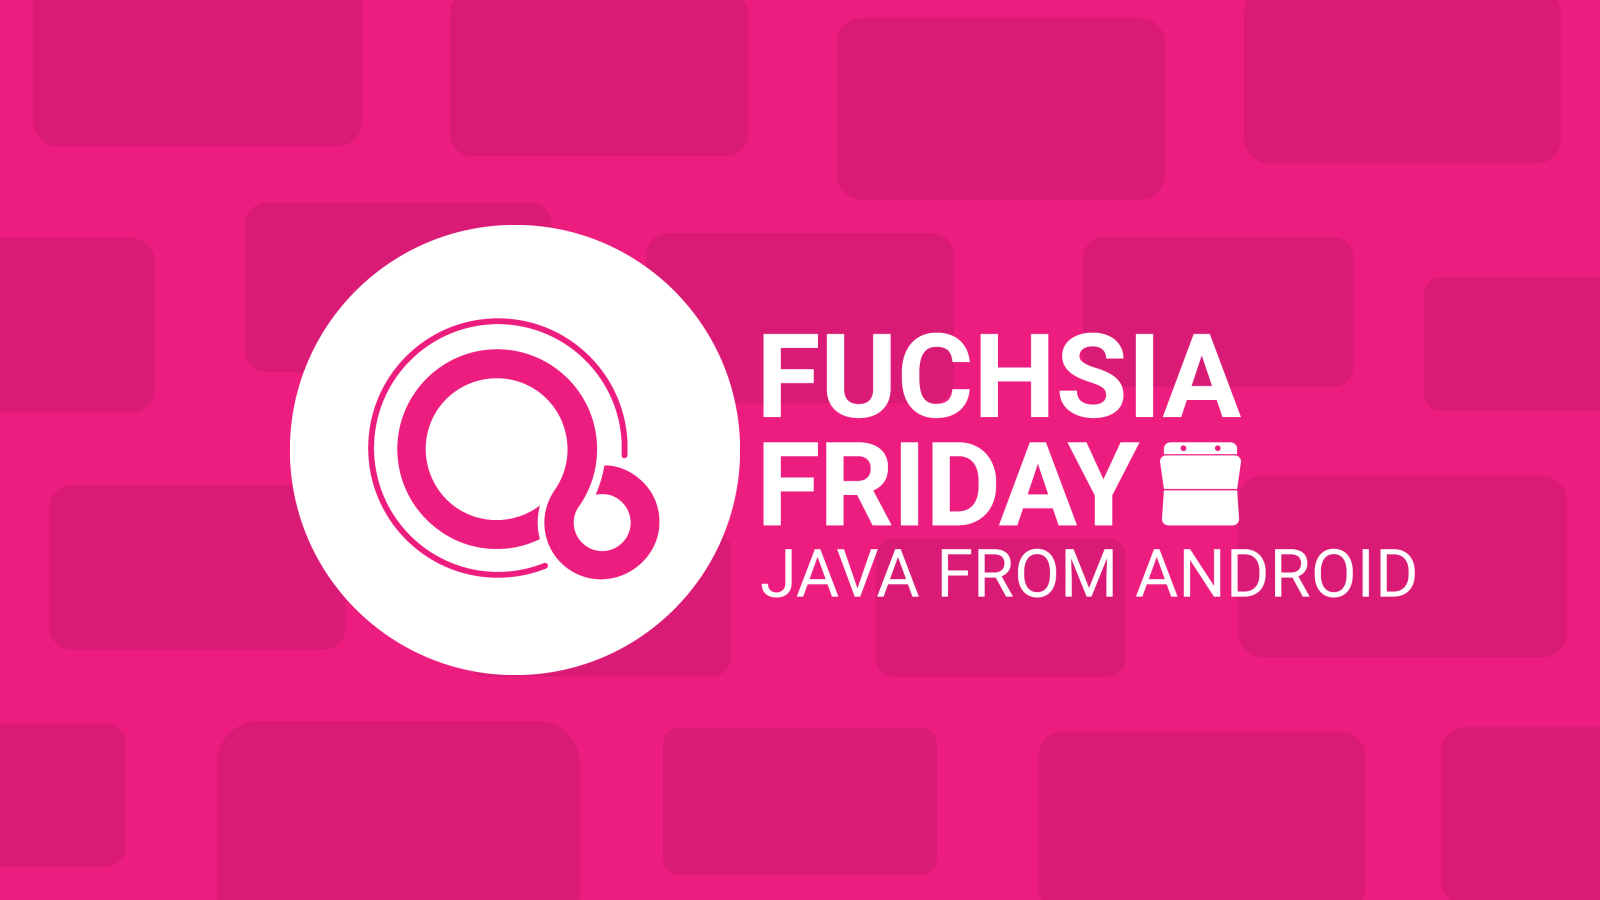 Fuchsia Friday: Fuchsia is gaining support for Java – by borrowing from Android